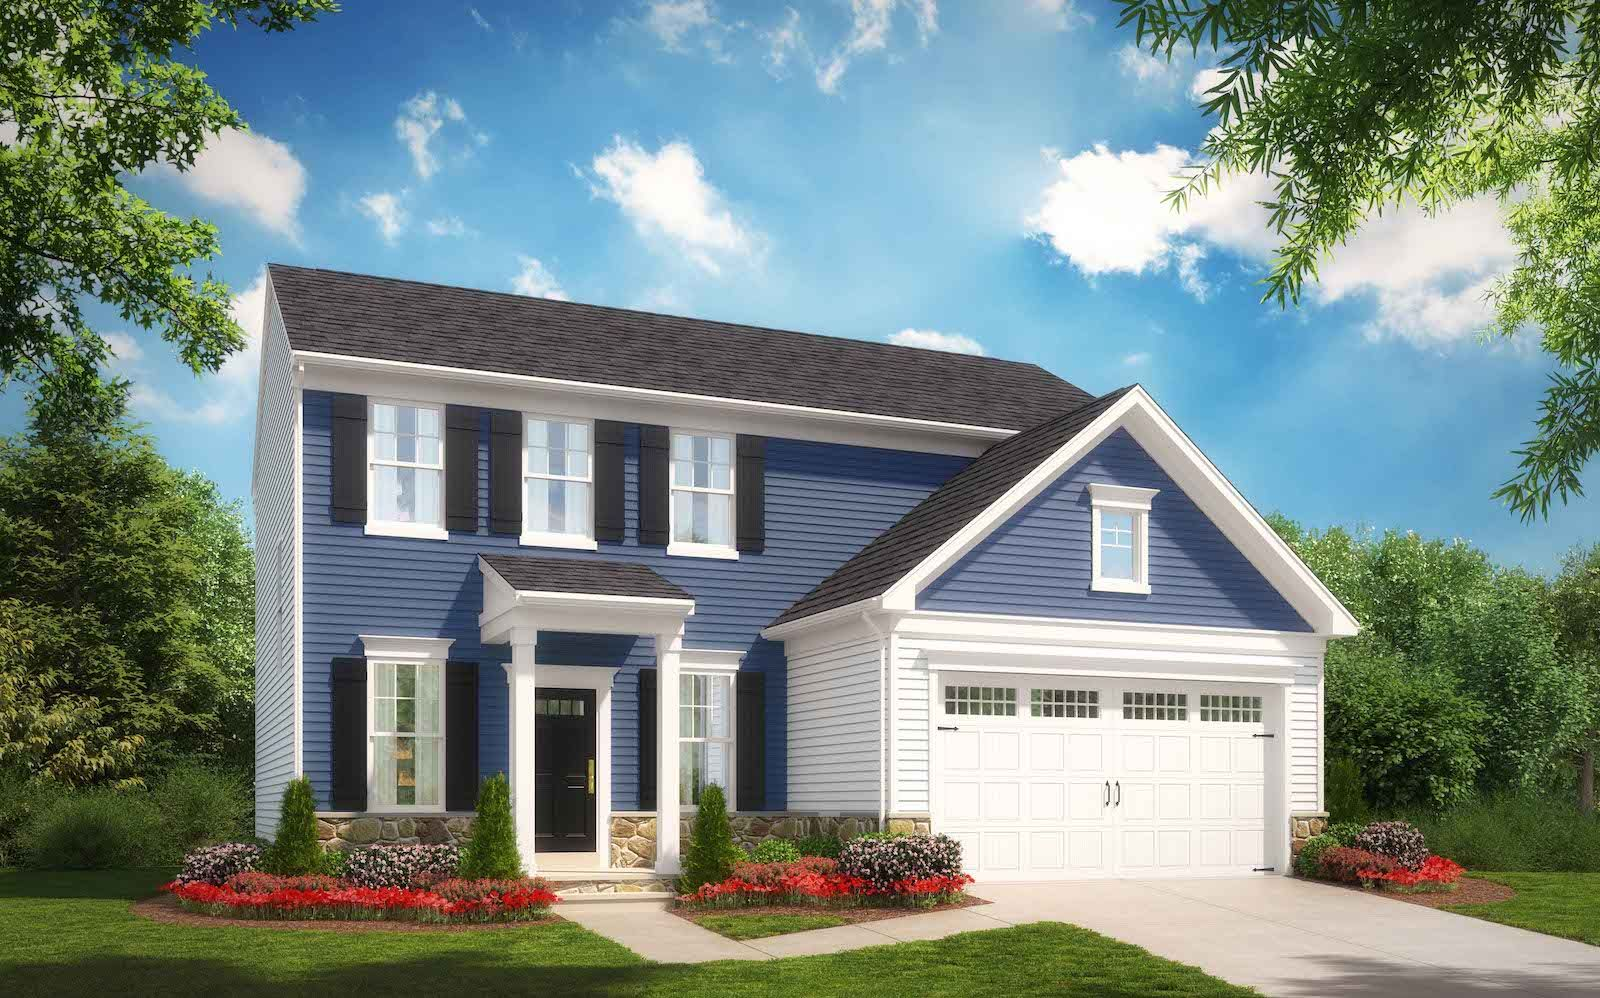 Exterior:Elevation 1 of the Sheridan a home design offered at Snowden Bridge in Stephenson VA by Brookfield Residential